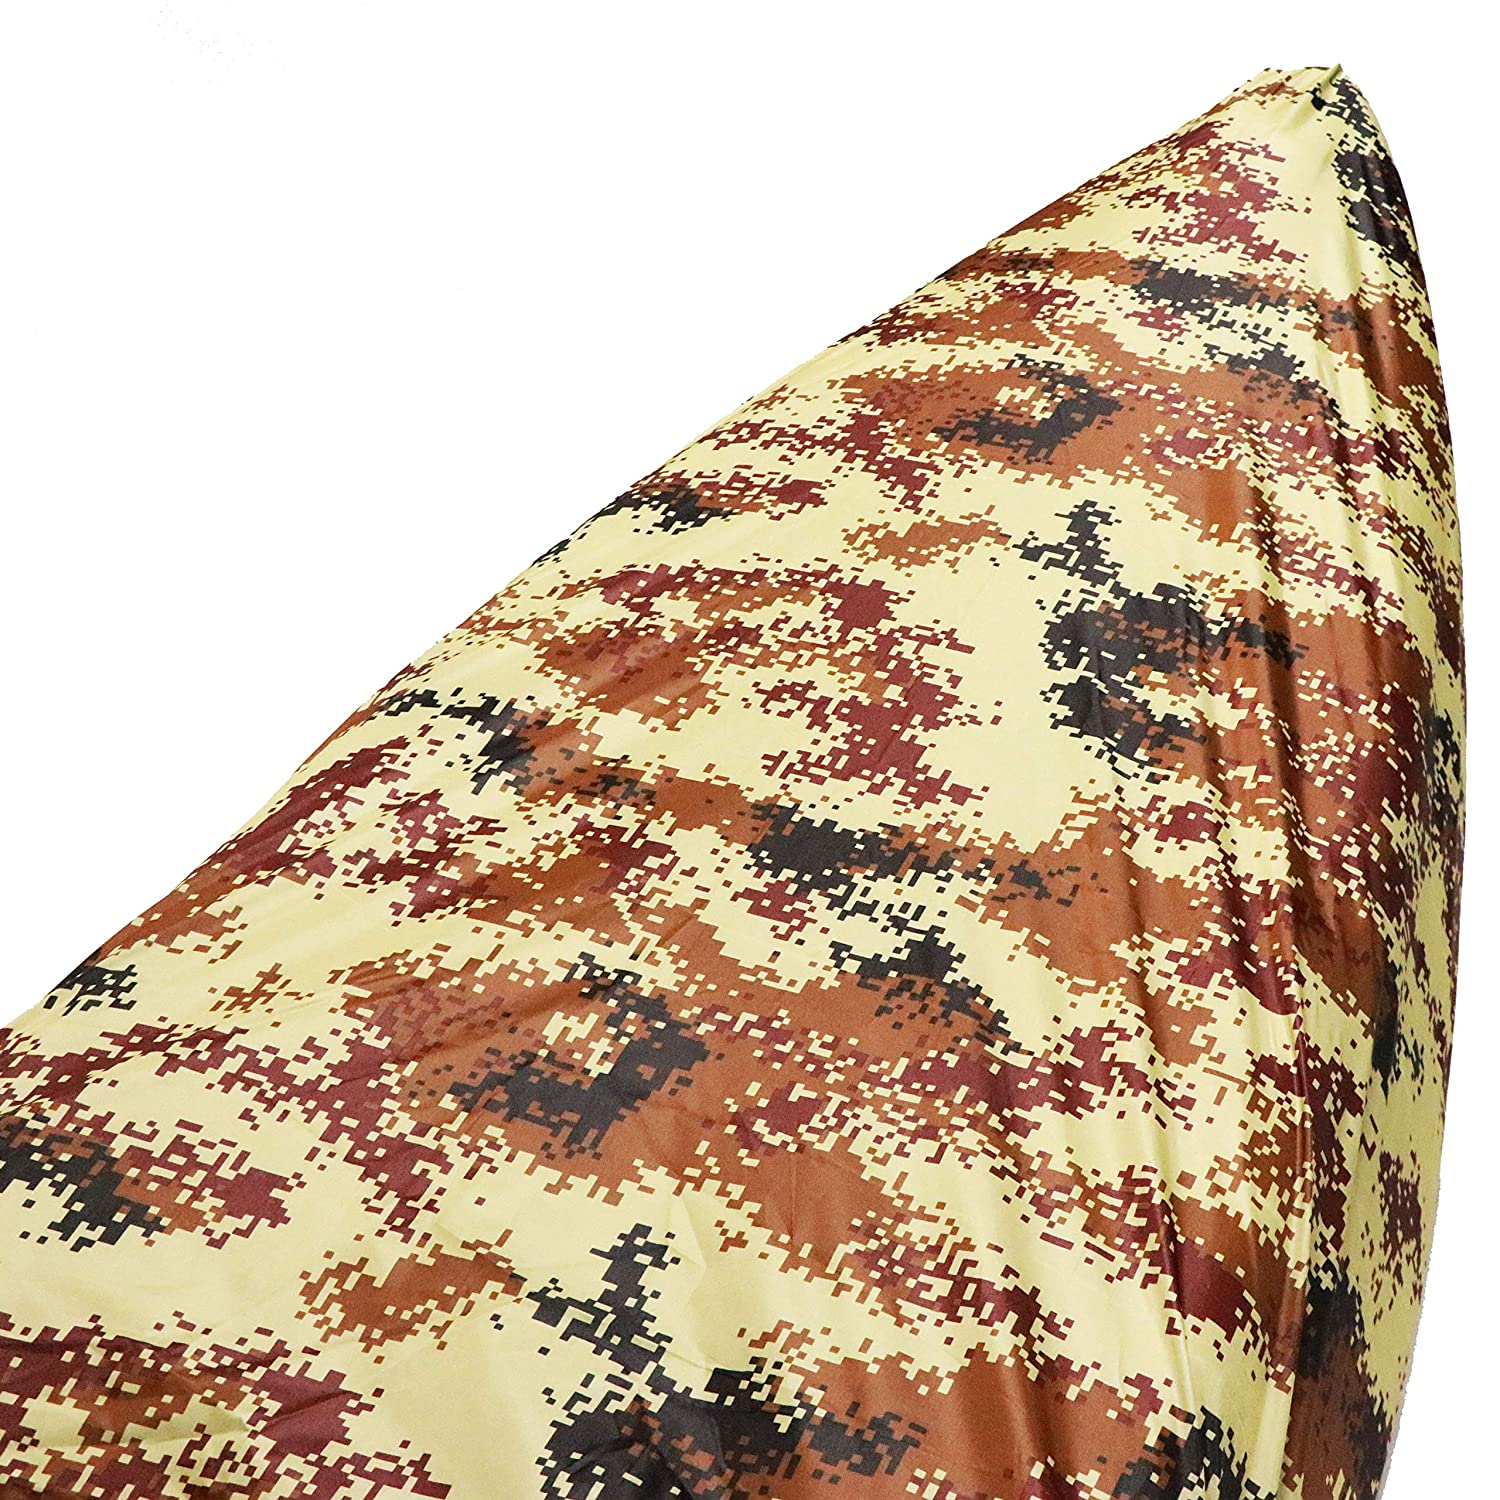 HUIBELL Camo Colors 210D Oxford Durable Kayak Canoe Storage Cockpit Dust Cover 9.8ft-21.3ft Range 8 Sizes Waterproof /& UV Protector